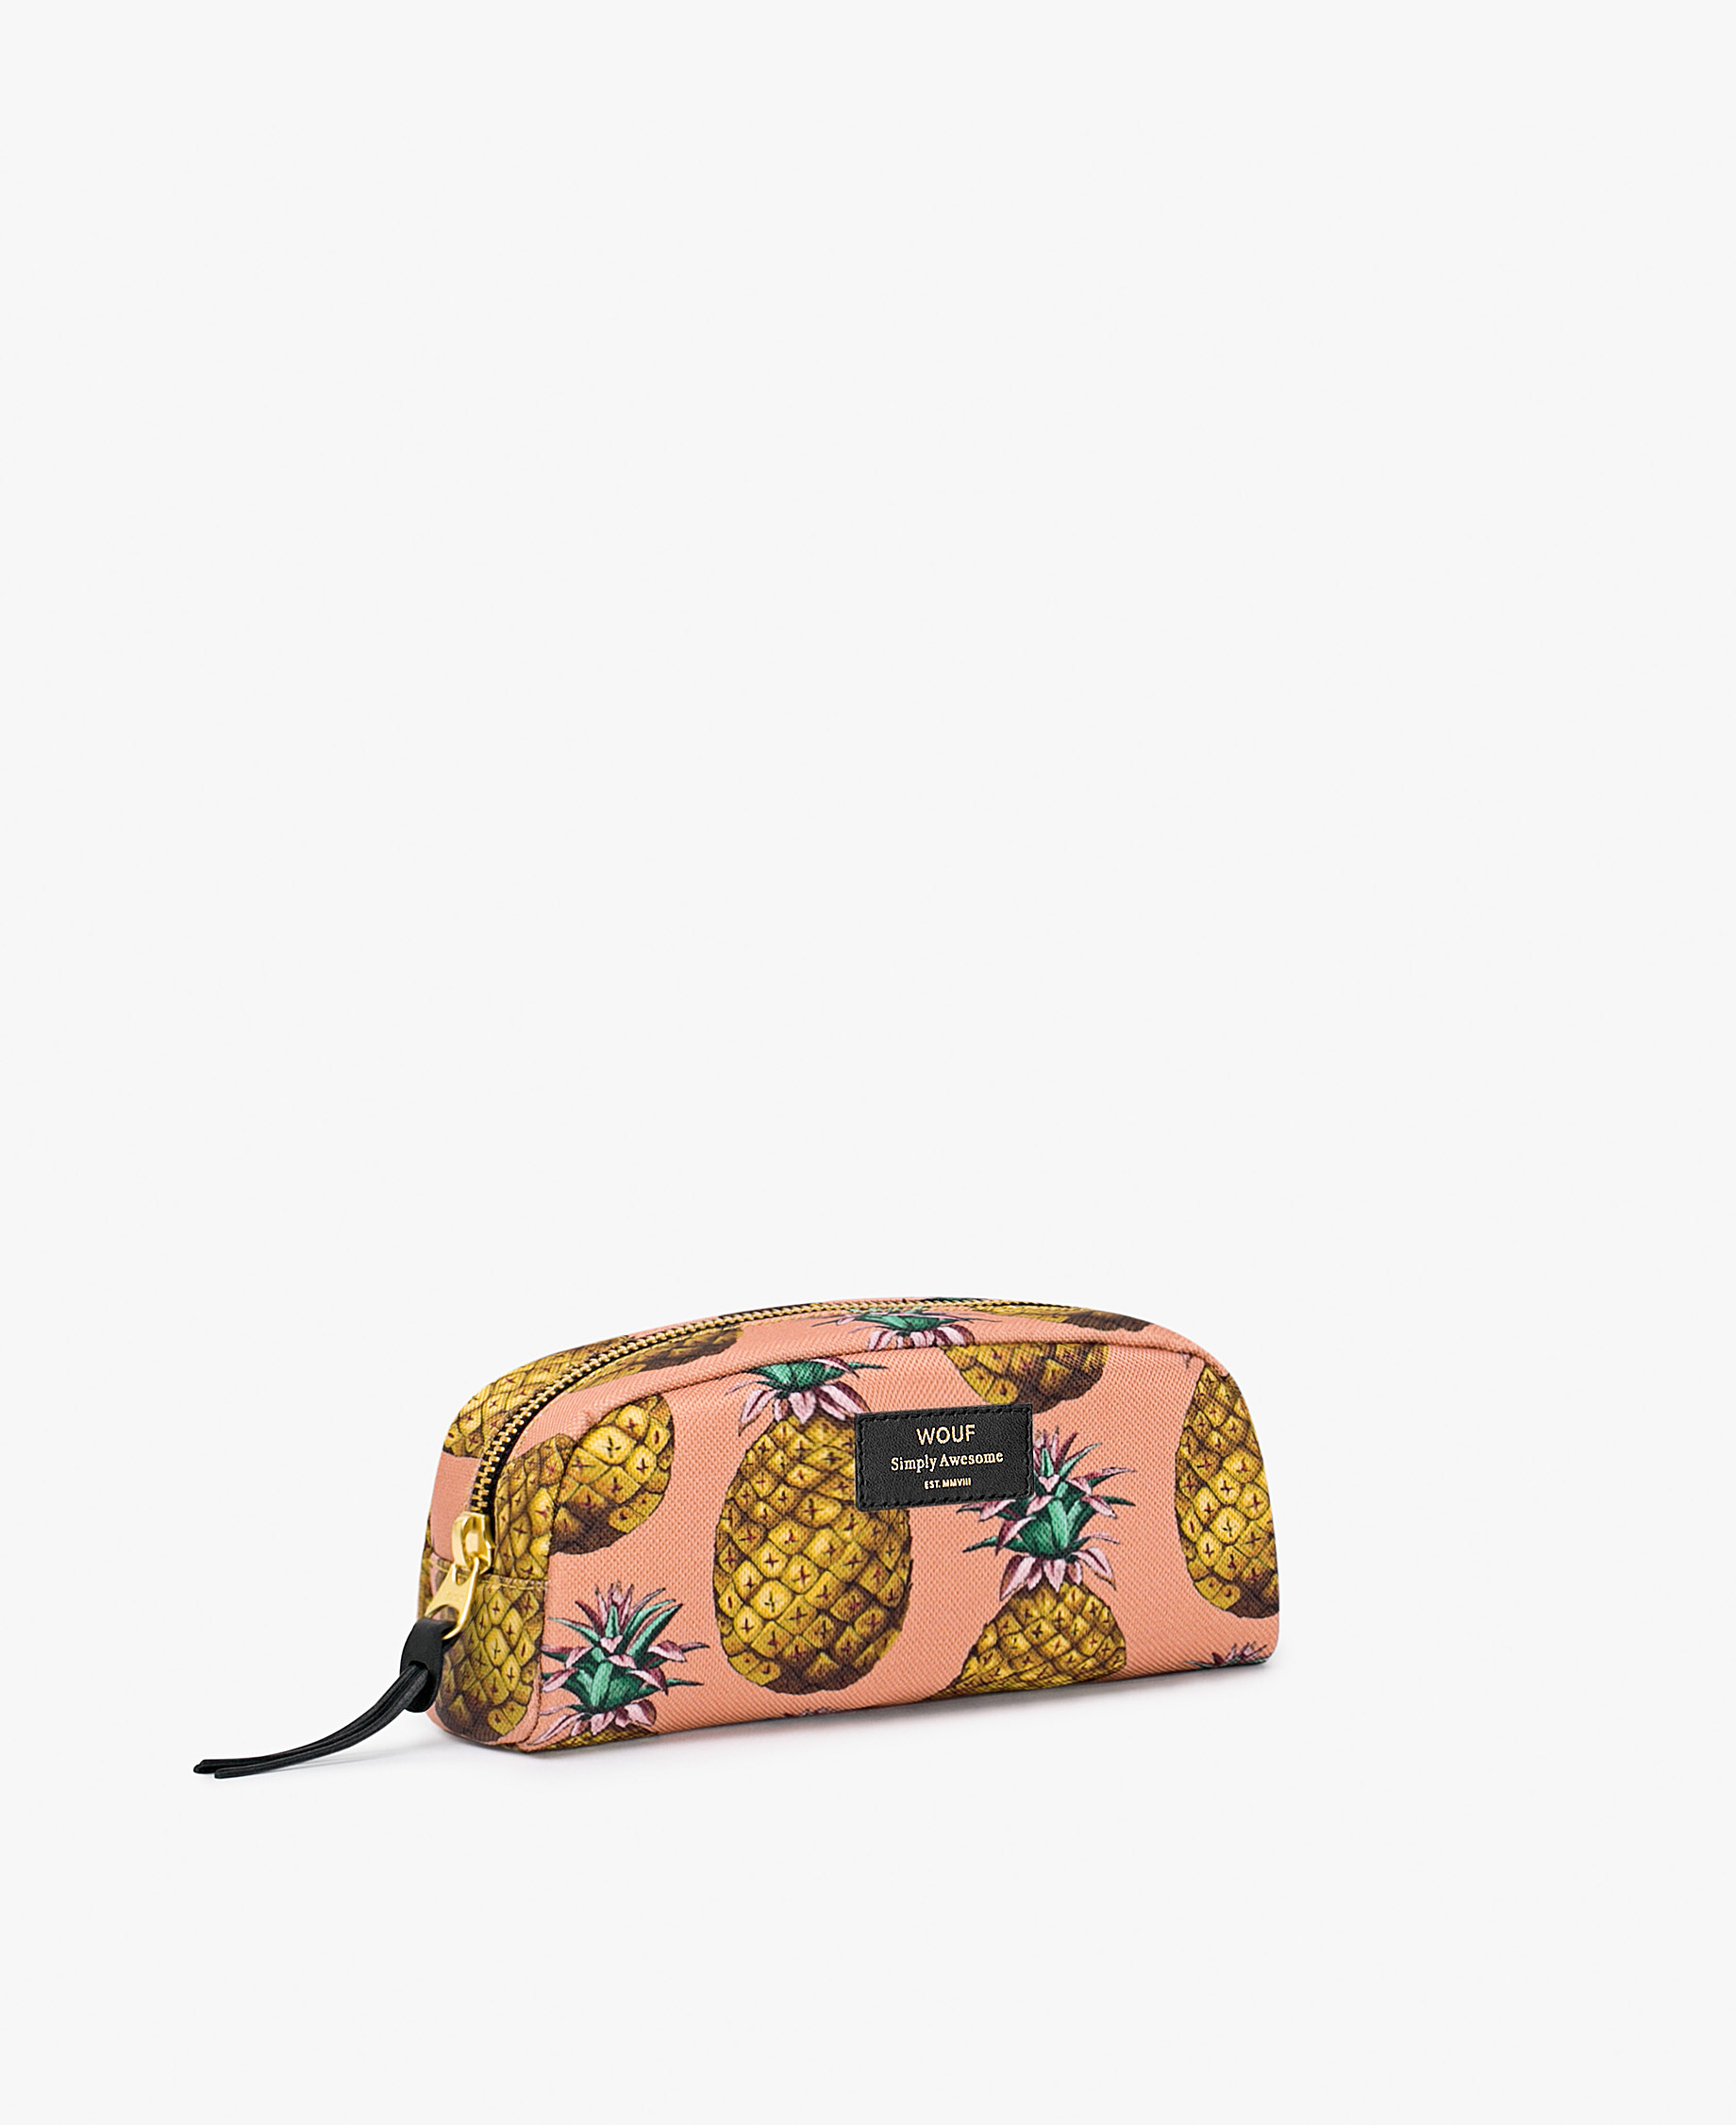 young woman toiletry bag